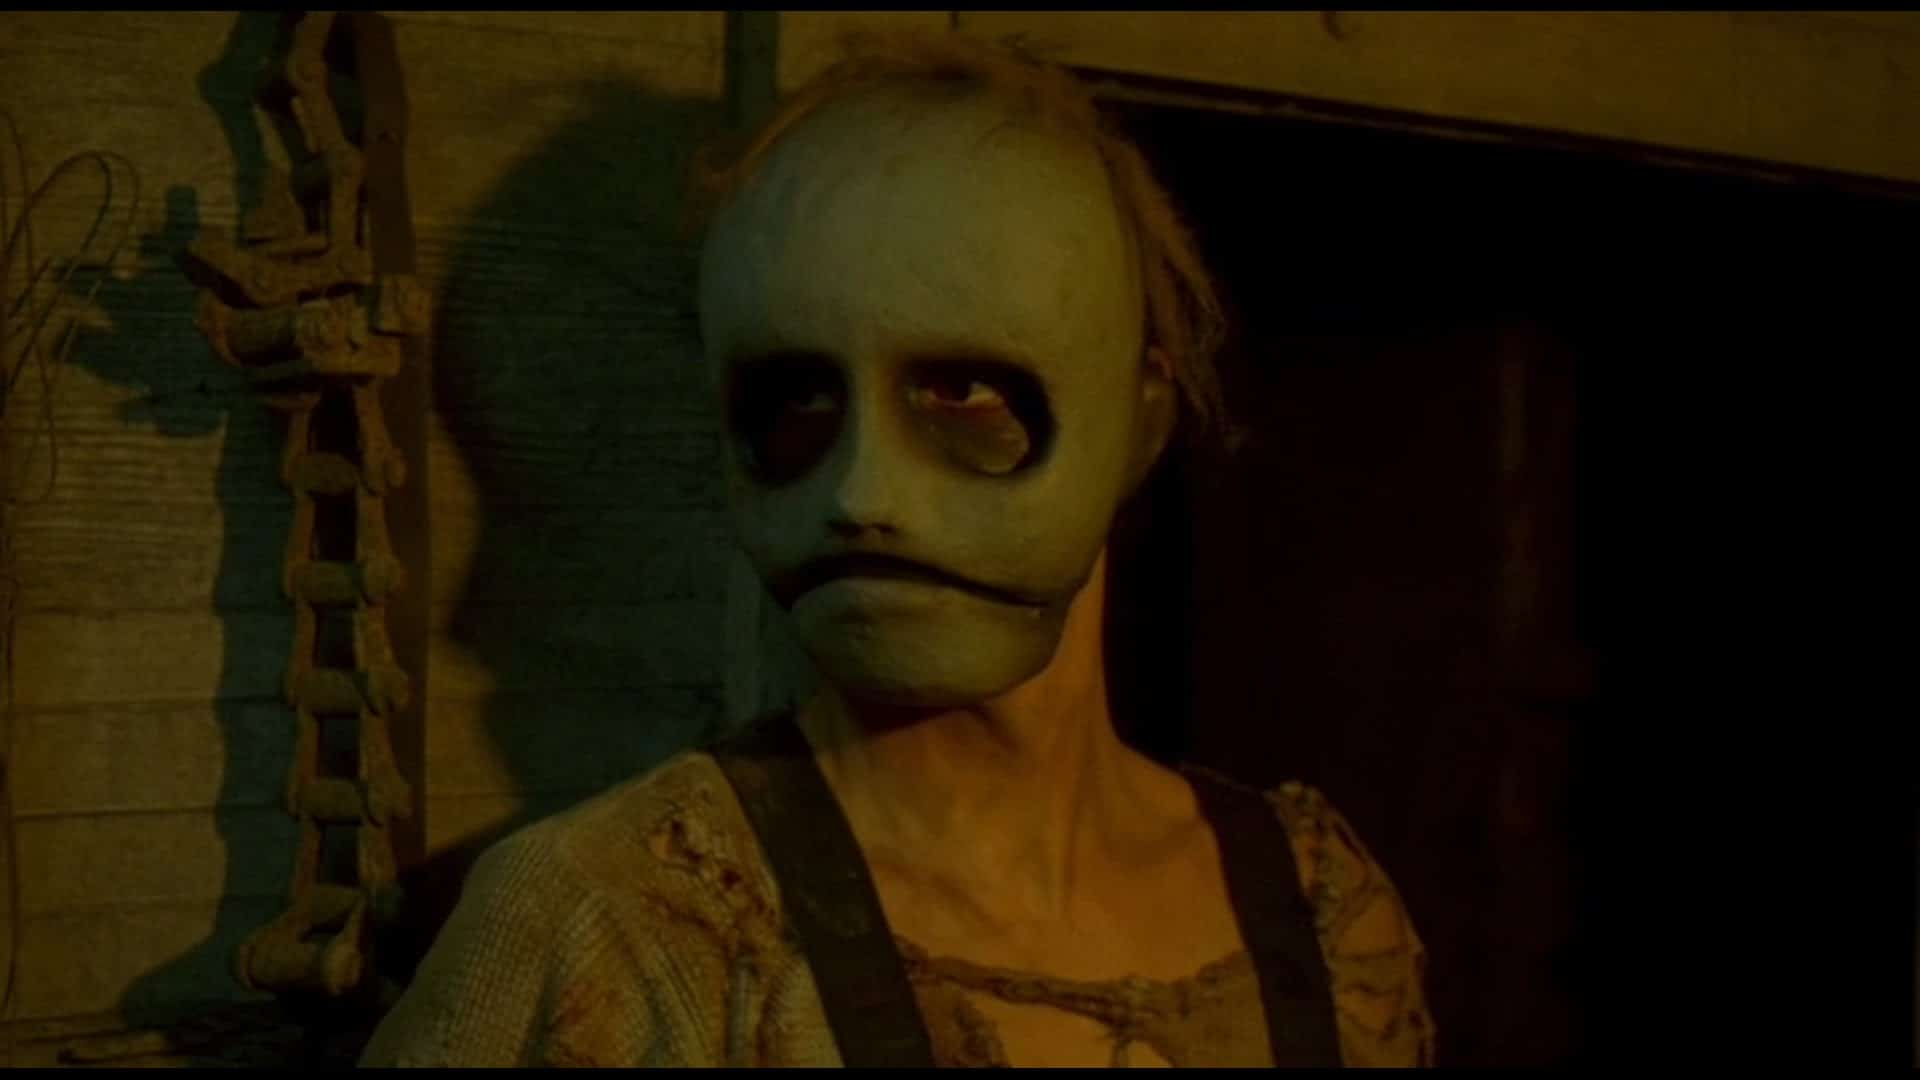 The Scariest Things Episode CXXX: Masked Killer Horror!